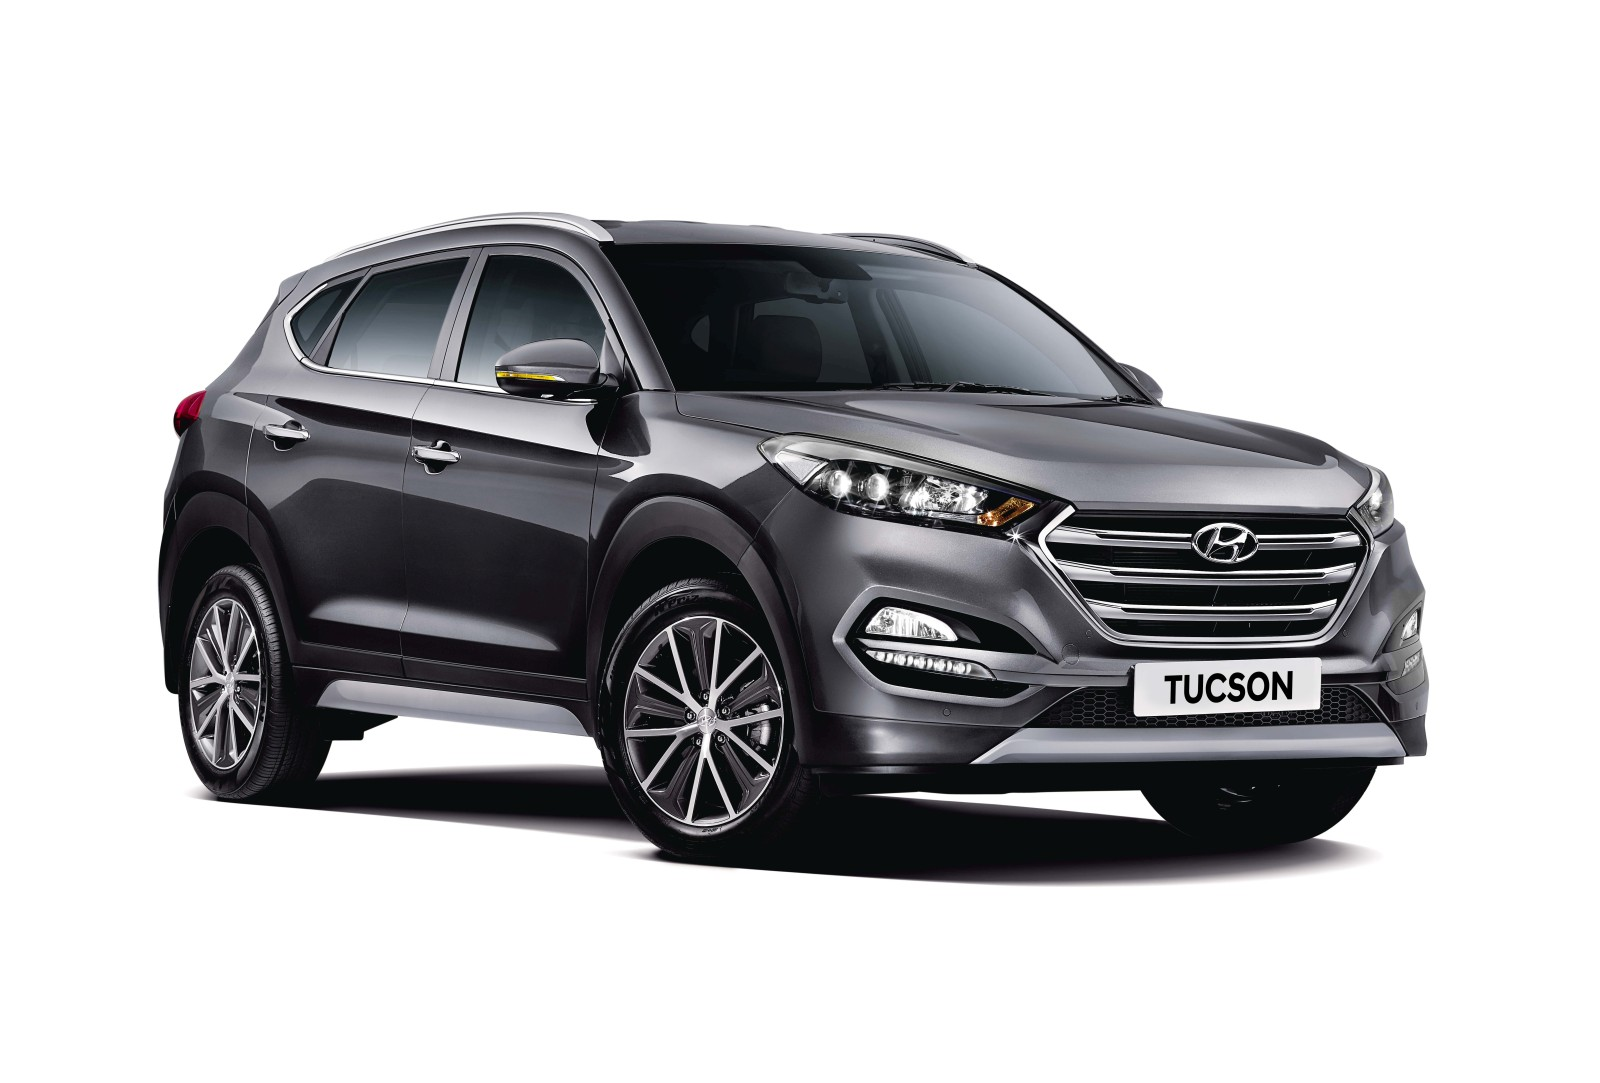 new 2017 hyundai tucson with intellimatic 4wd launched in india images features tech specs. Black Bedroom Furniture Sets. Home Design Ideas